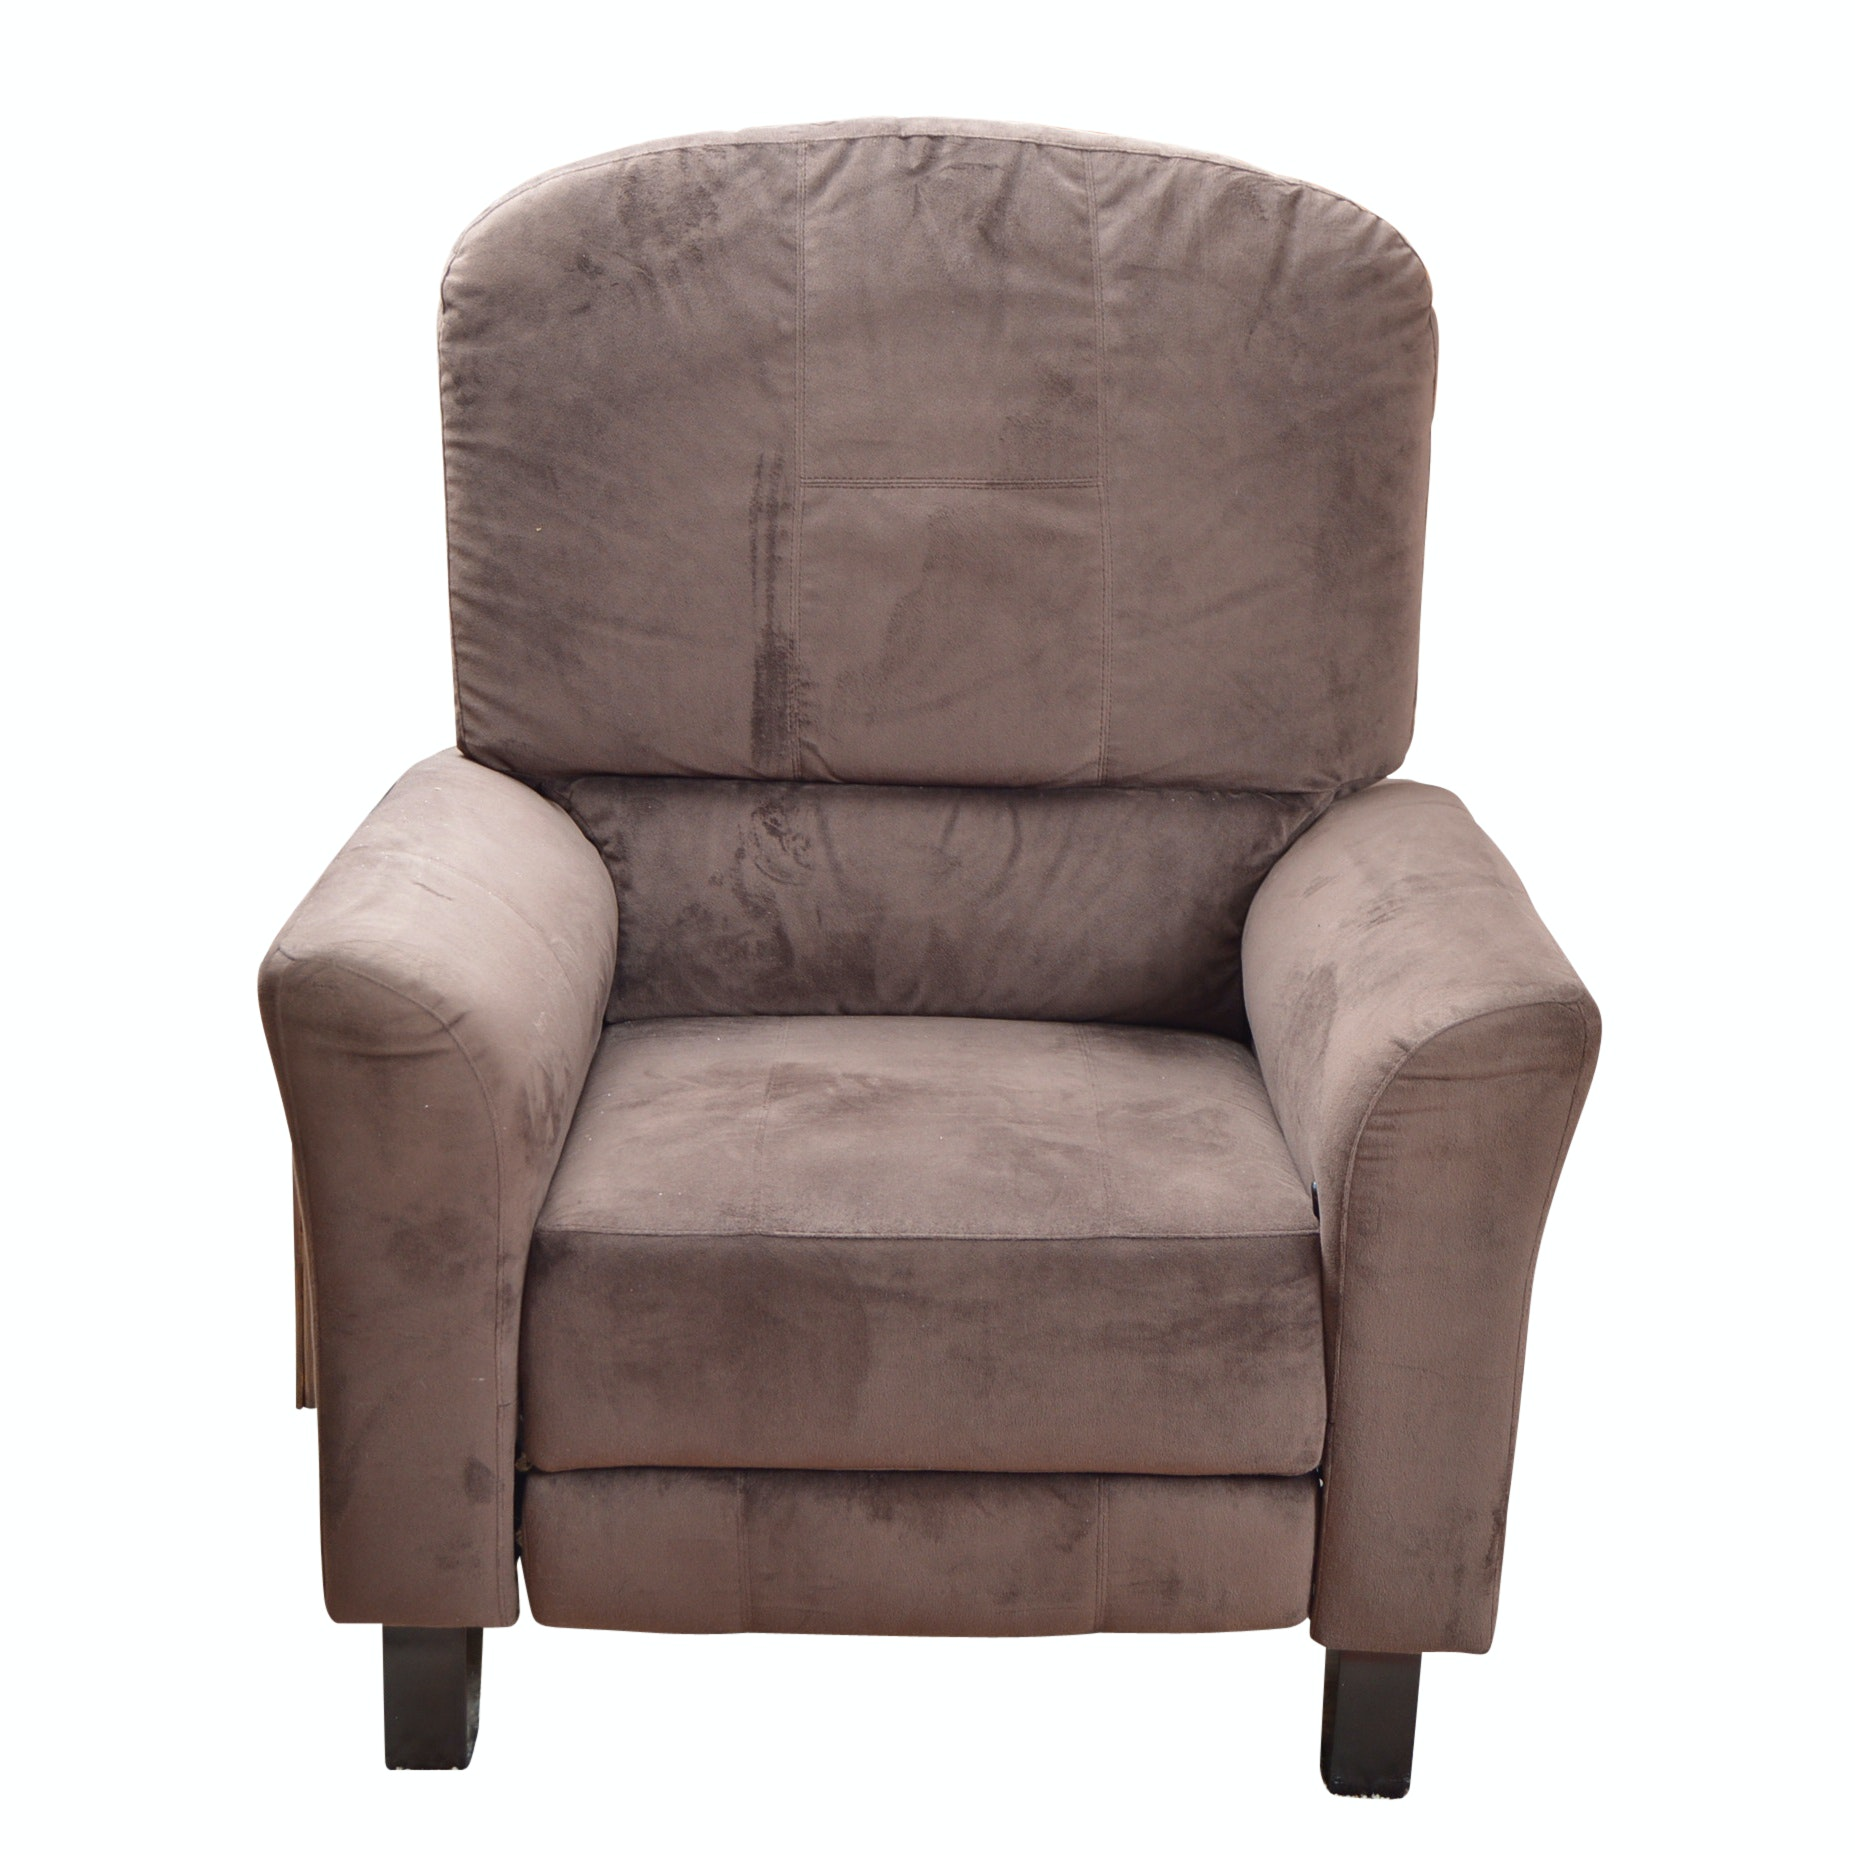 Brown Ultrasuede Recliner Chair